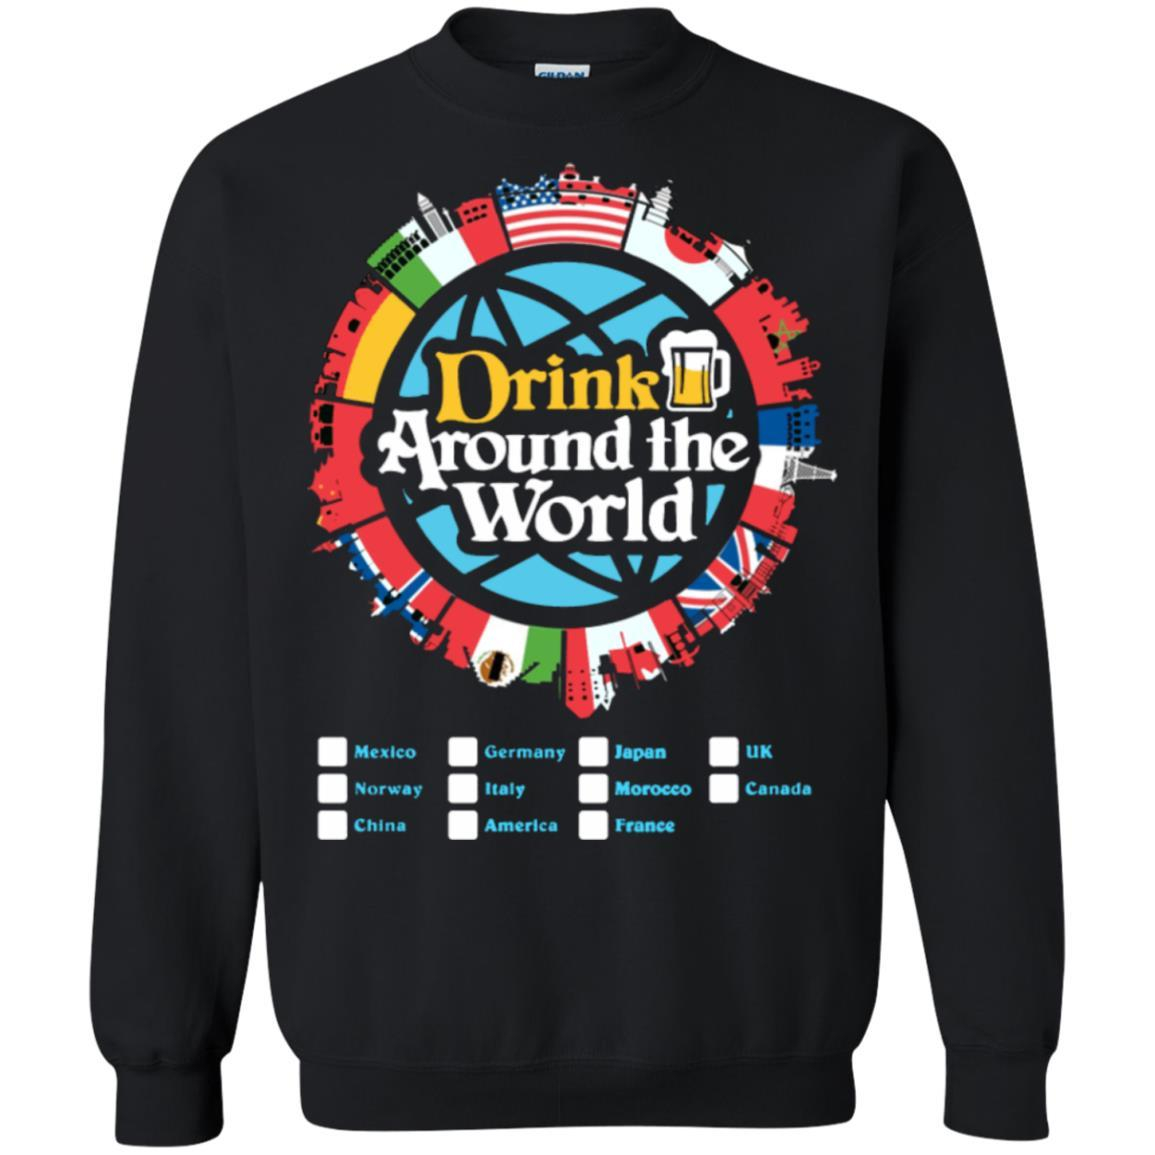 Drink Around the World - Pullover Sweatshirt Black / 5XL